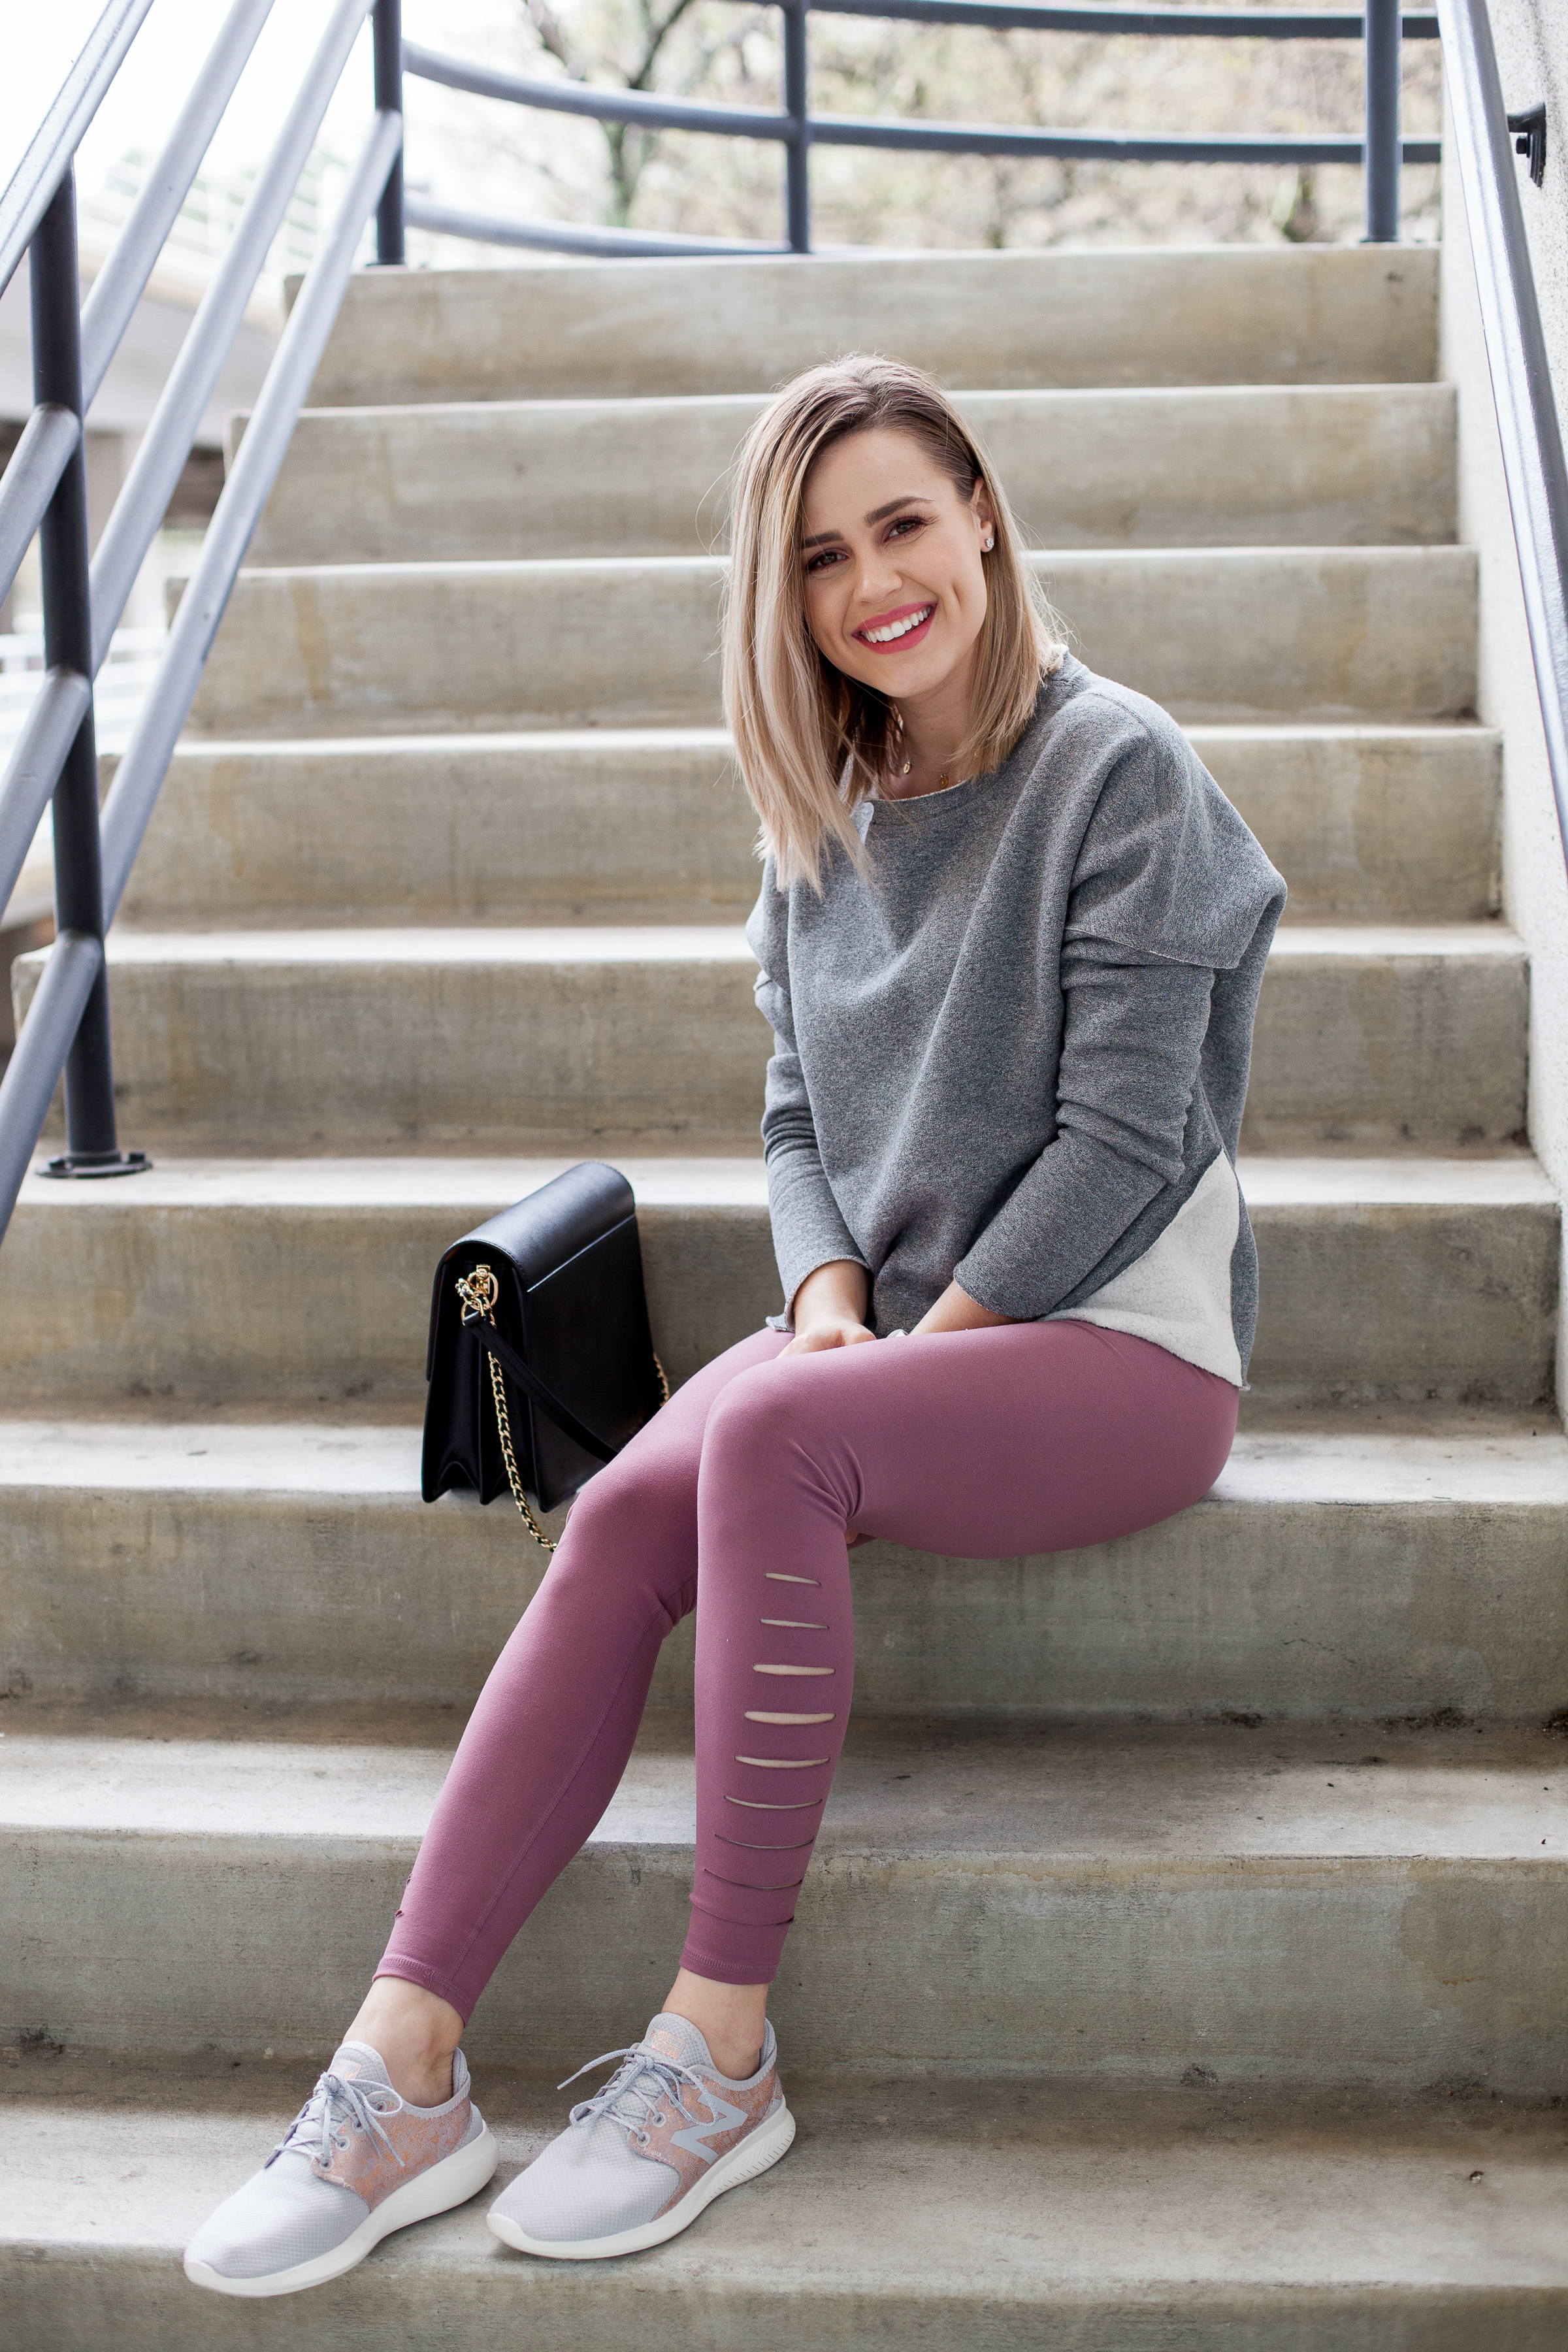 Athleisure Outfit | Casual outfit | chic legging outfit | Abercrombie leggings | Uptown with Elly Brown